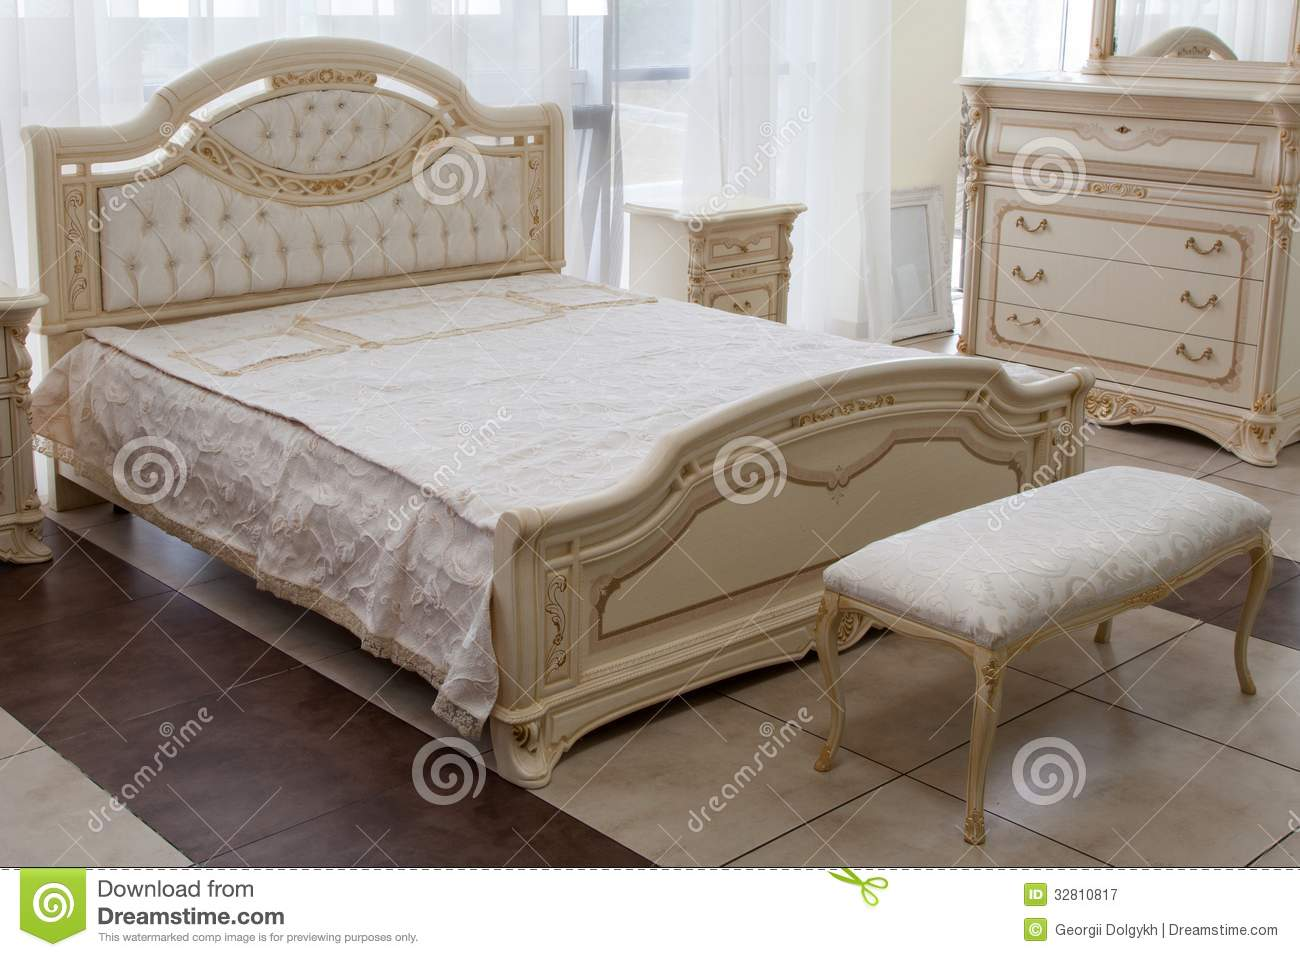 Awesome chambre a coucher royal italy images design for Decoration chambre a coucher